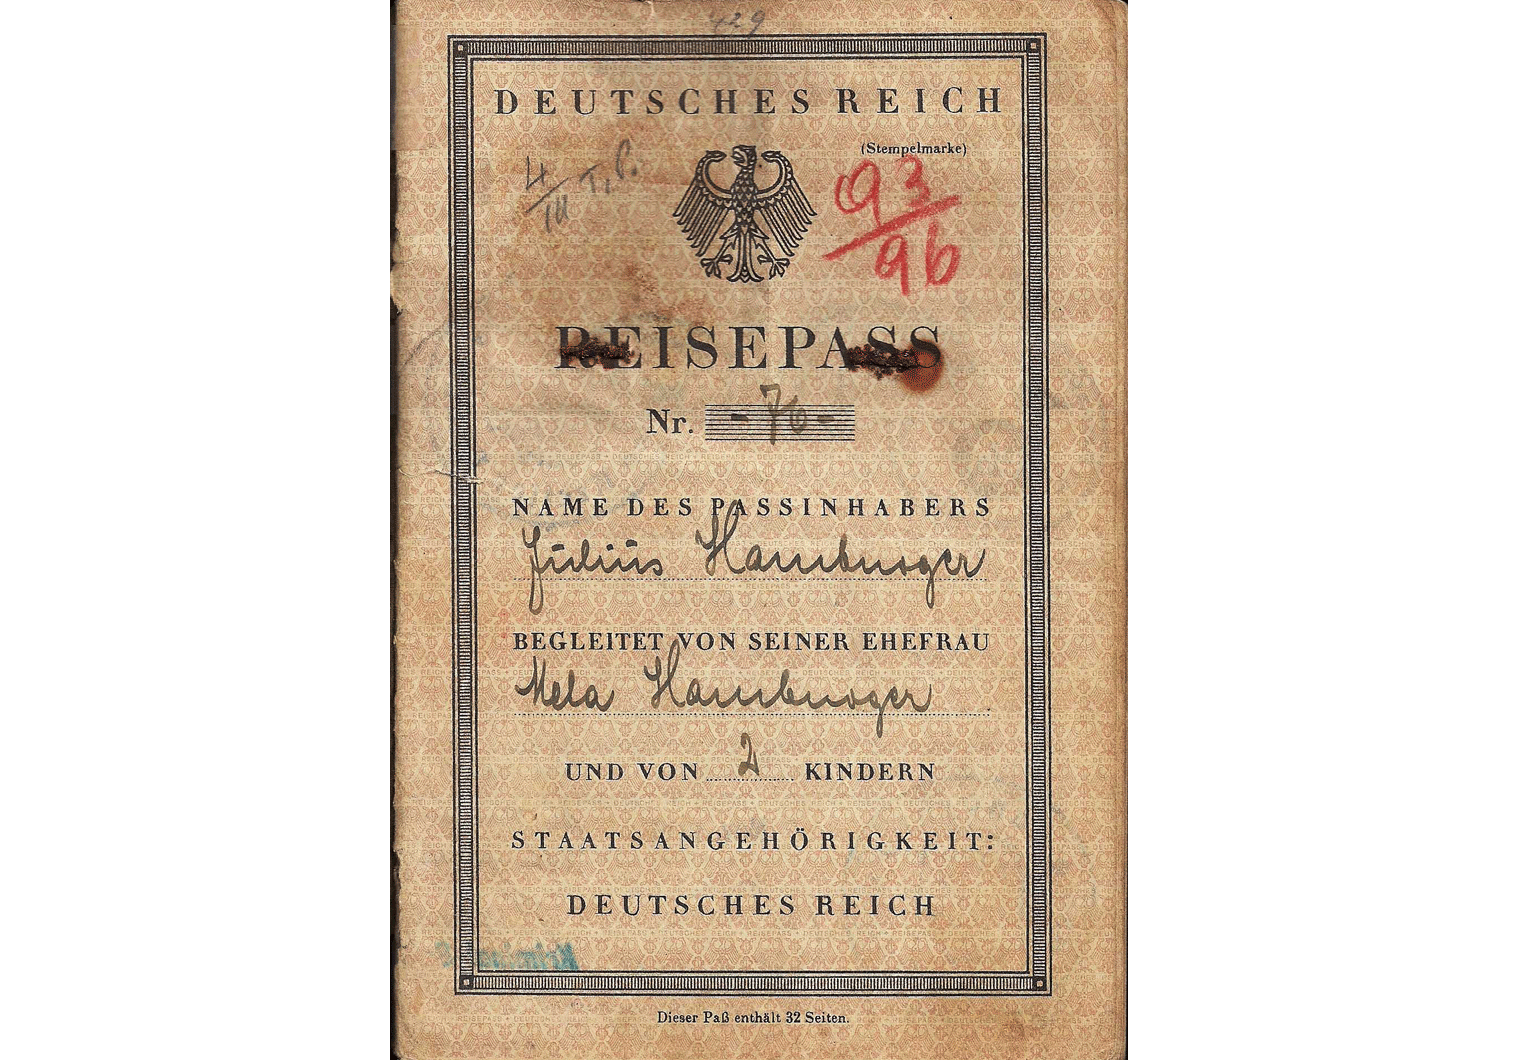 German passport for Jew 1934